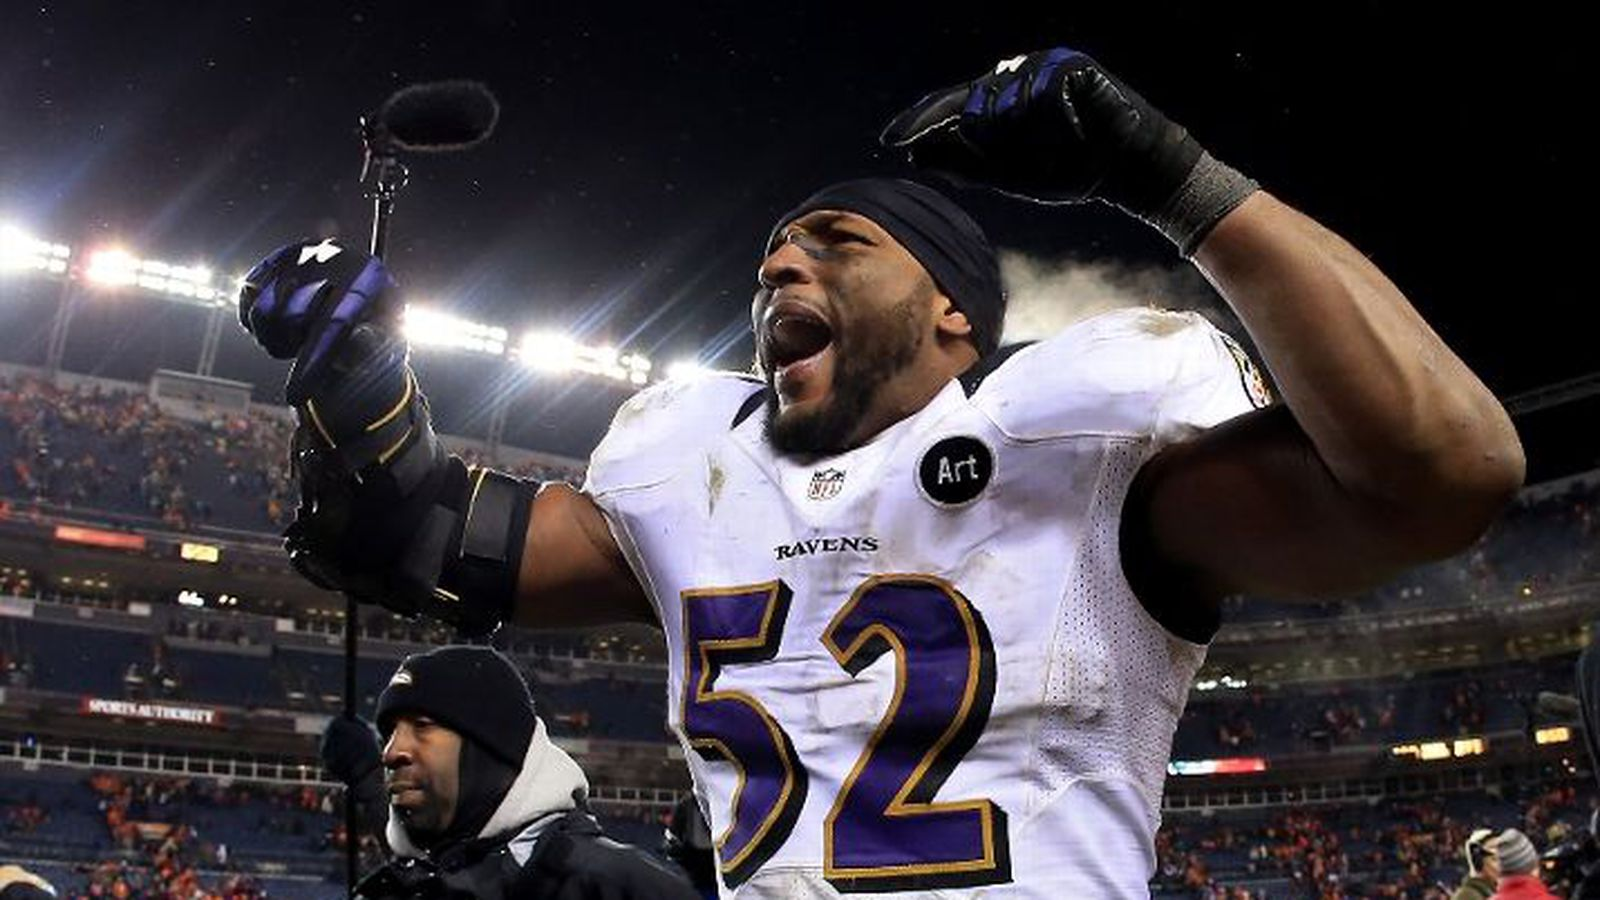 Ray_lewis_broncos_win.0.0